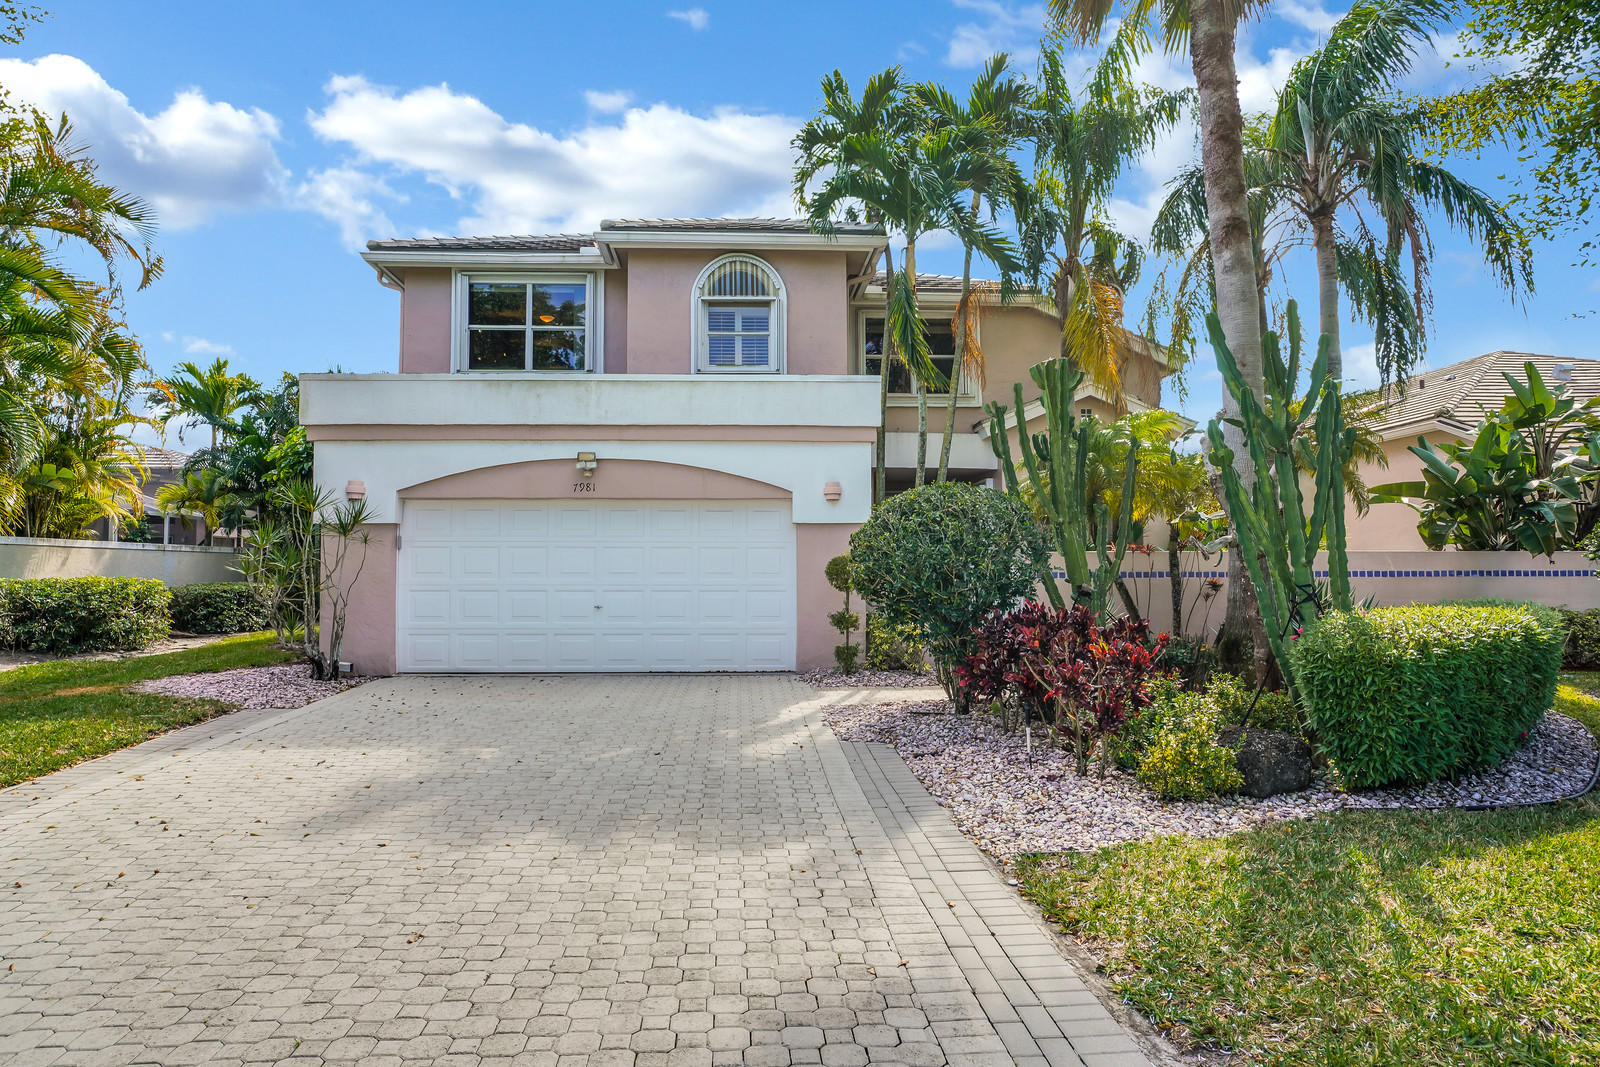 Photo of 7981 Travelers Tree Drive, Boca Raton, FL 33433